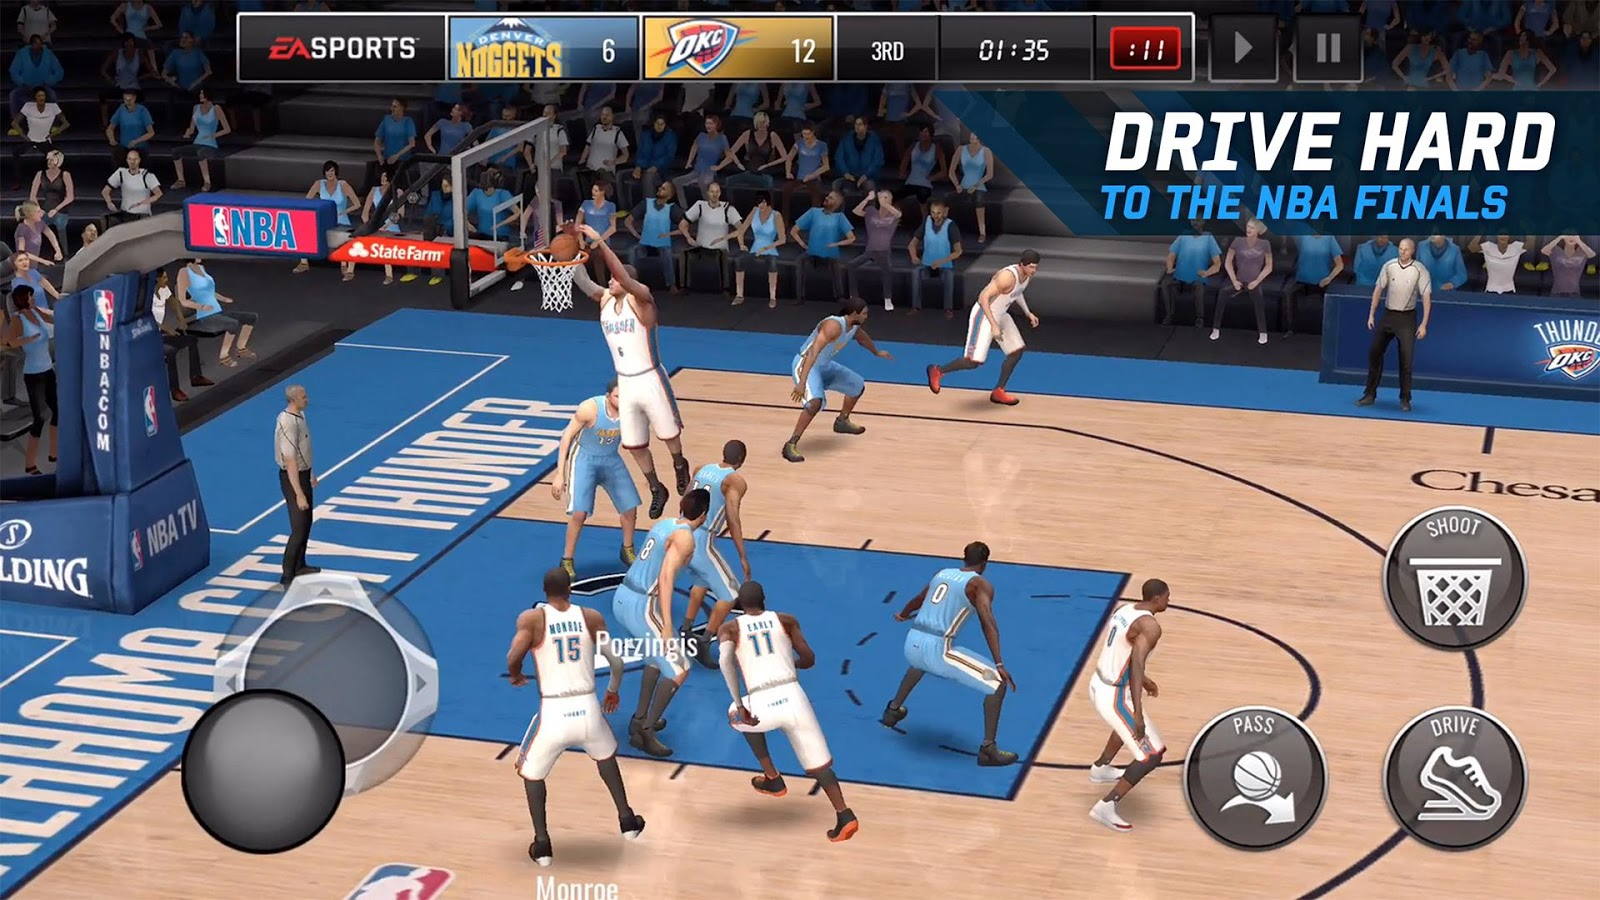 games nfl nba basketball live